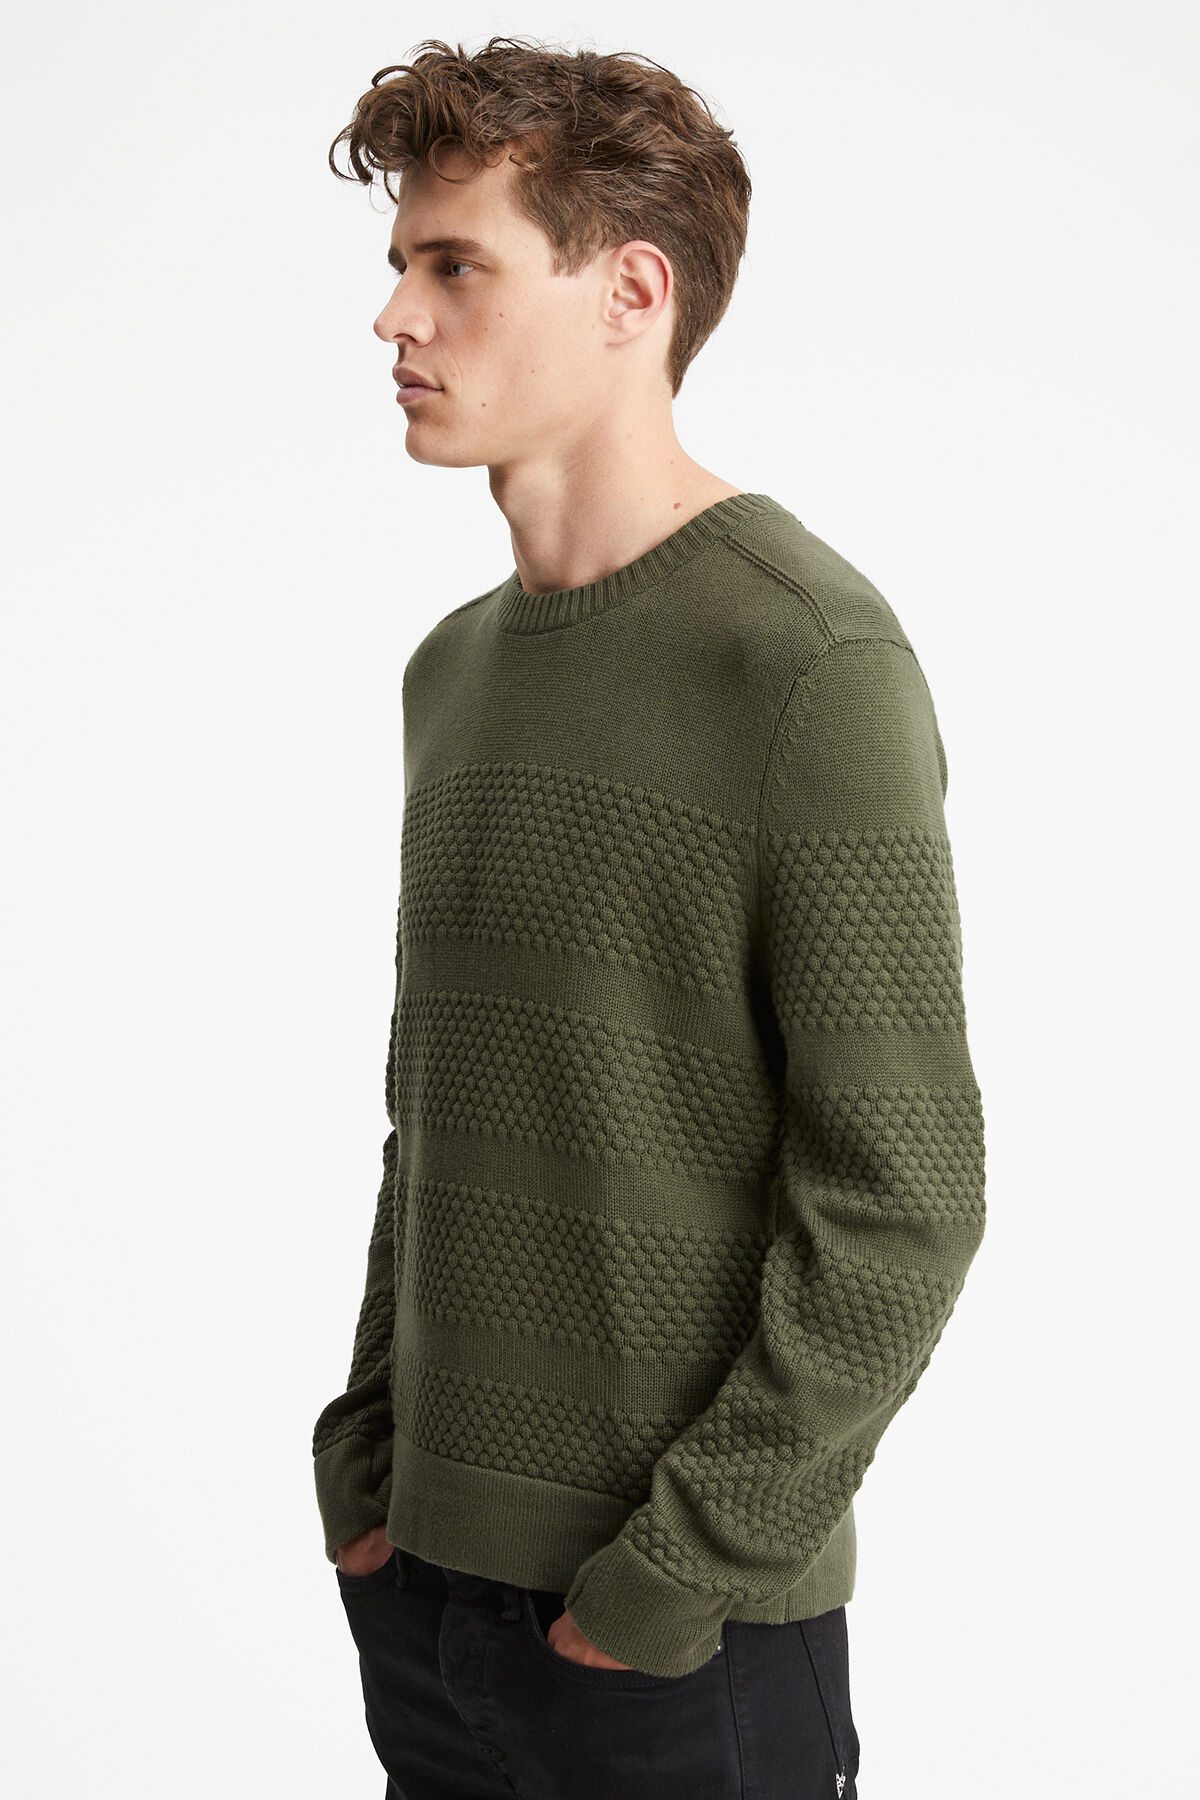 CLARENDON CREW Cotton & Cashmere Blend - Regular Fit